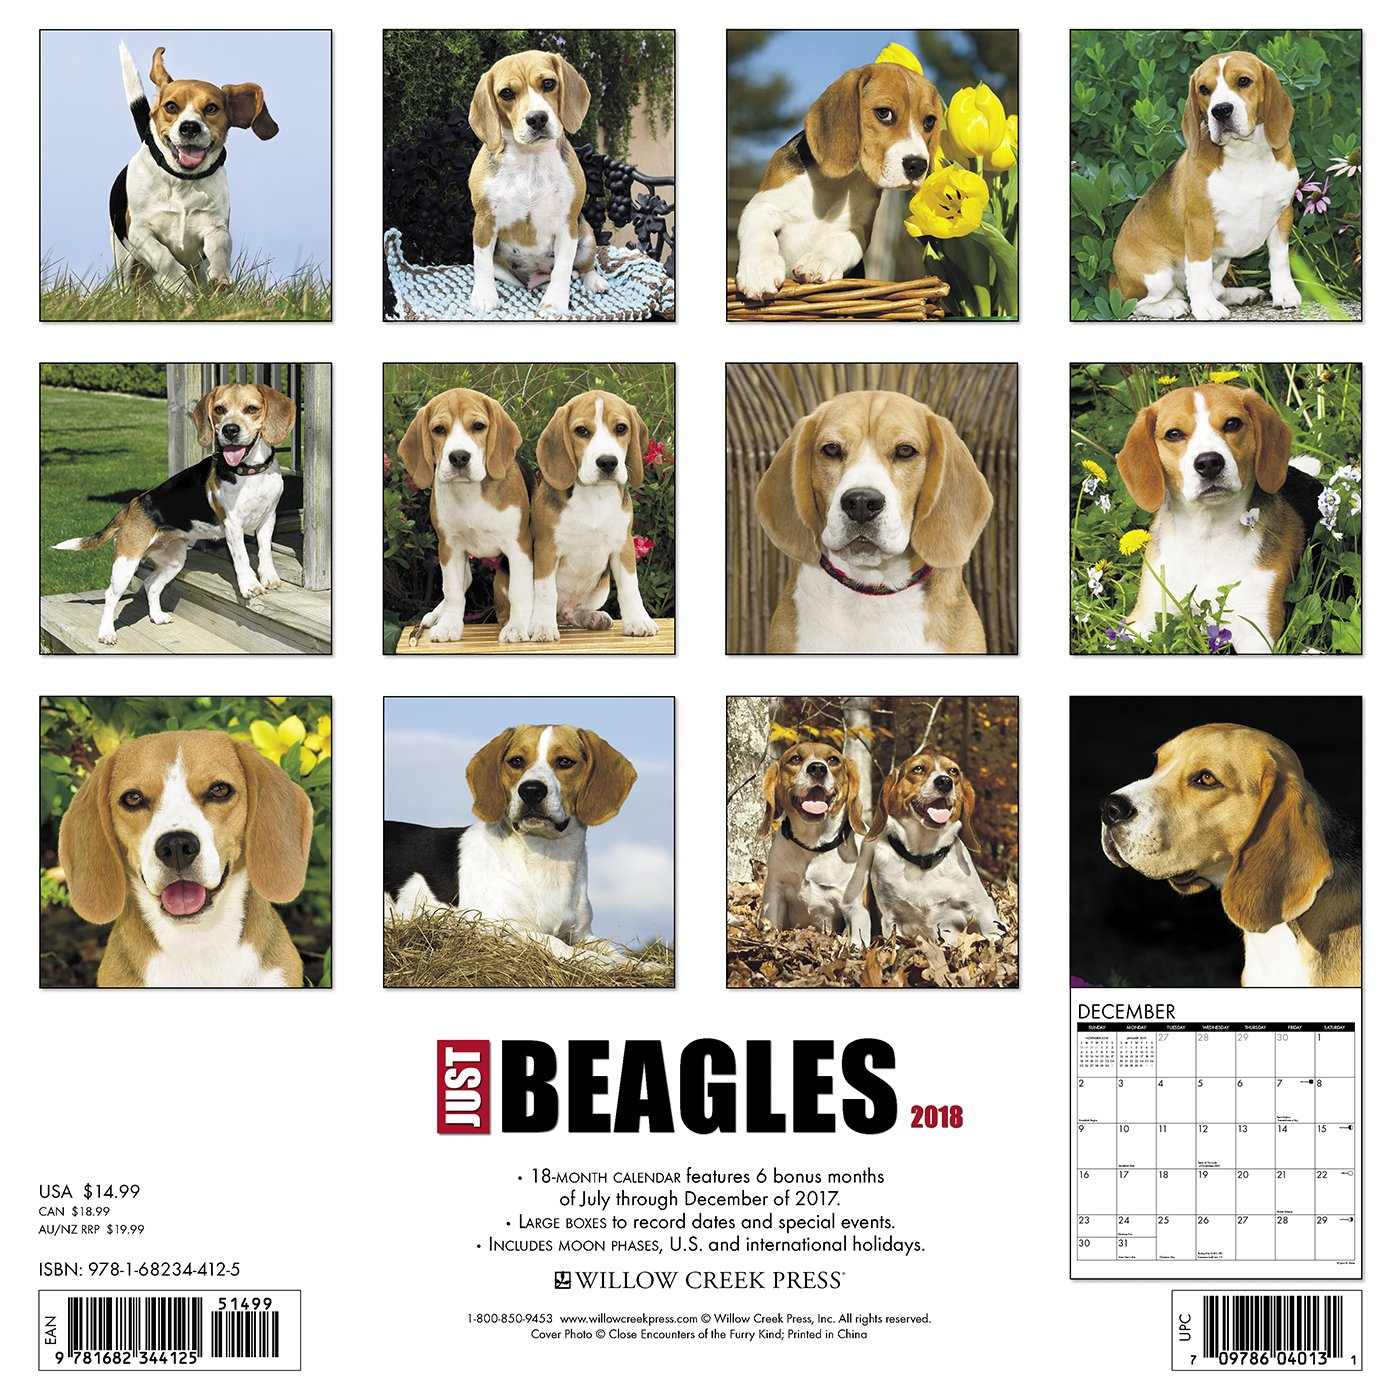 Must see Wisconsin Beagle Adorable Dog - 81sHfNiJVRL  Perfect Image Reference_6952  .jpg